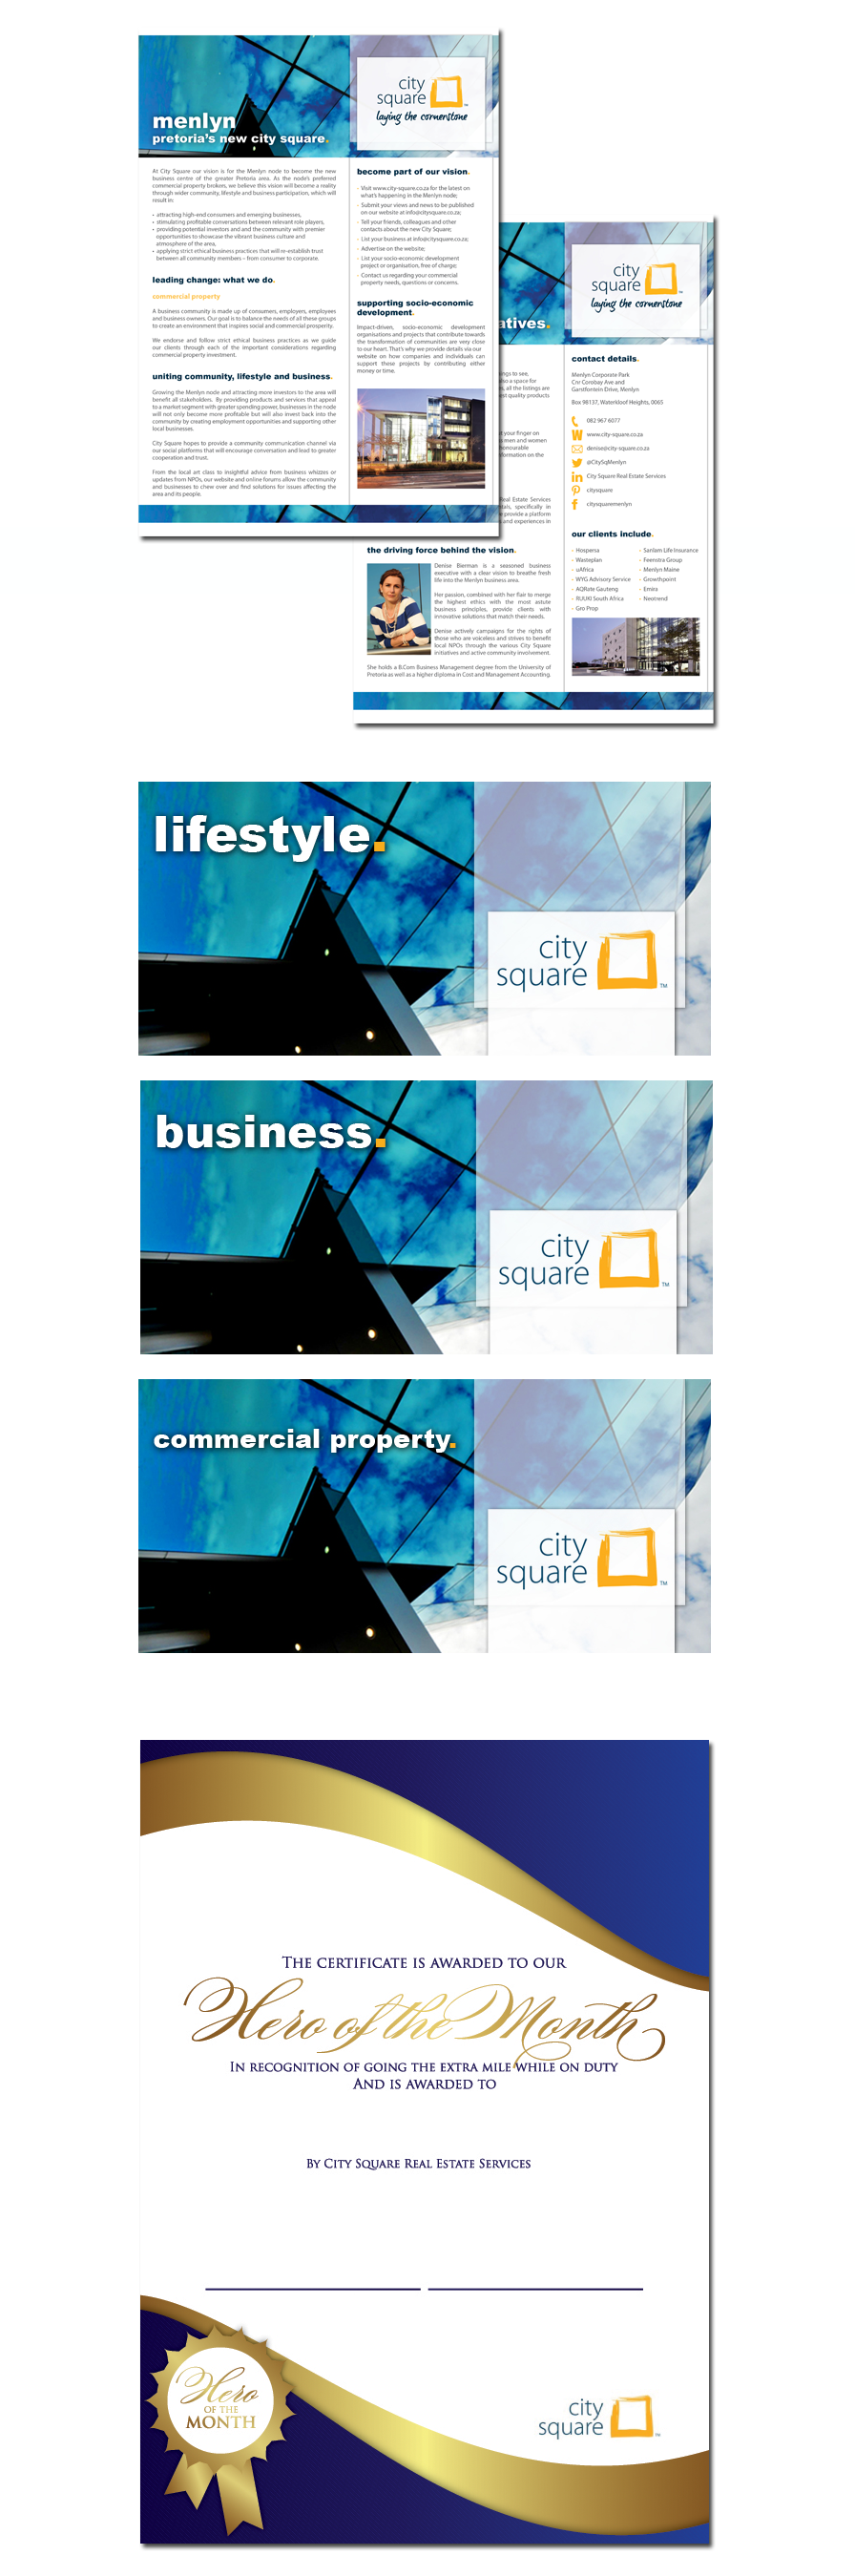 City Square Corporate Stationary Design